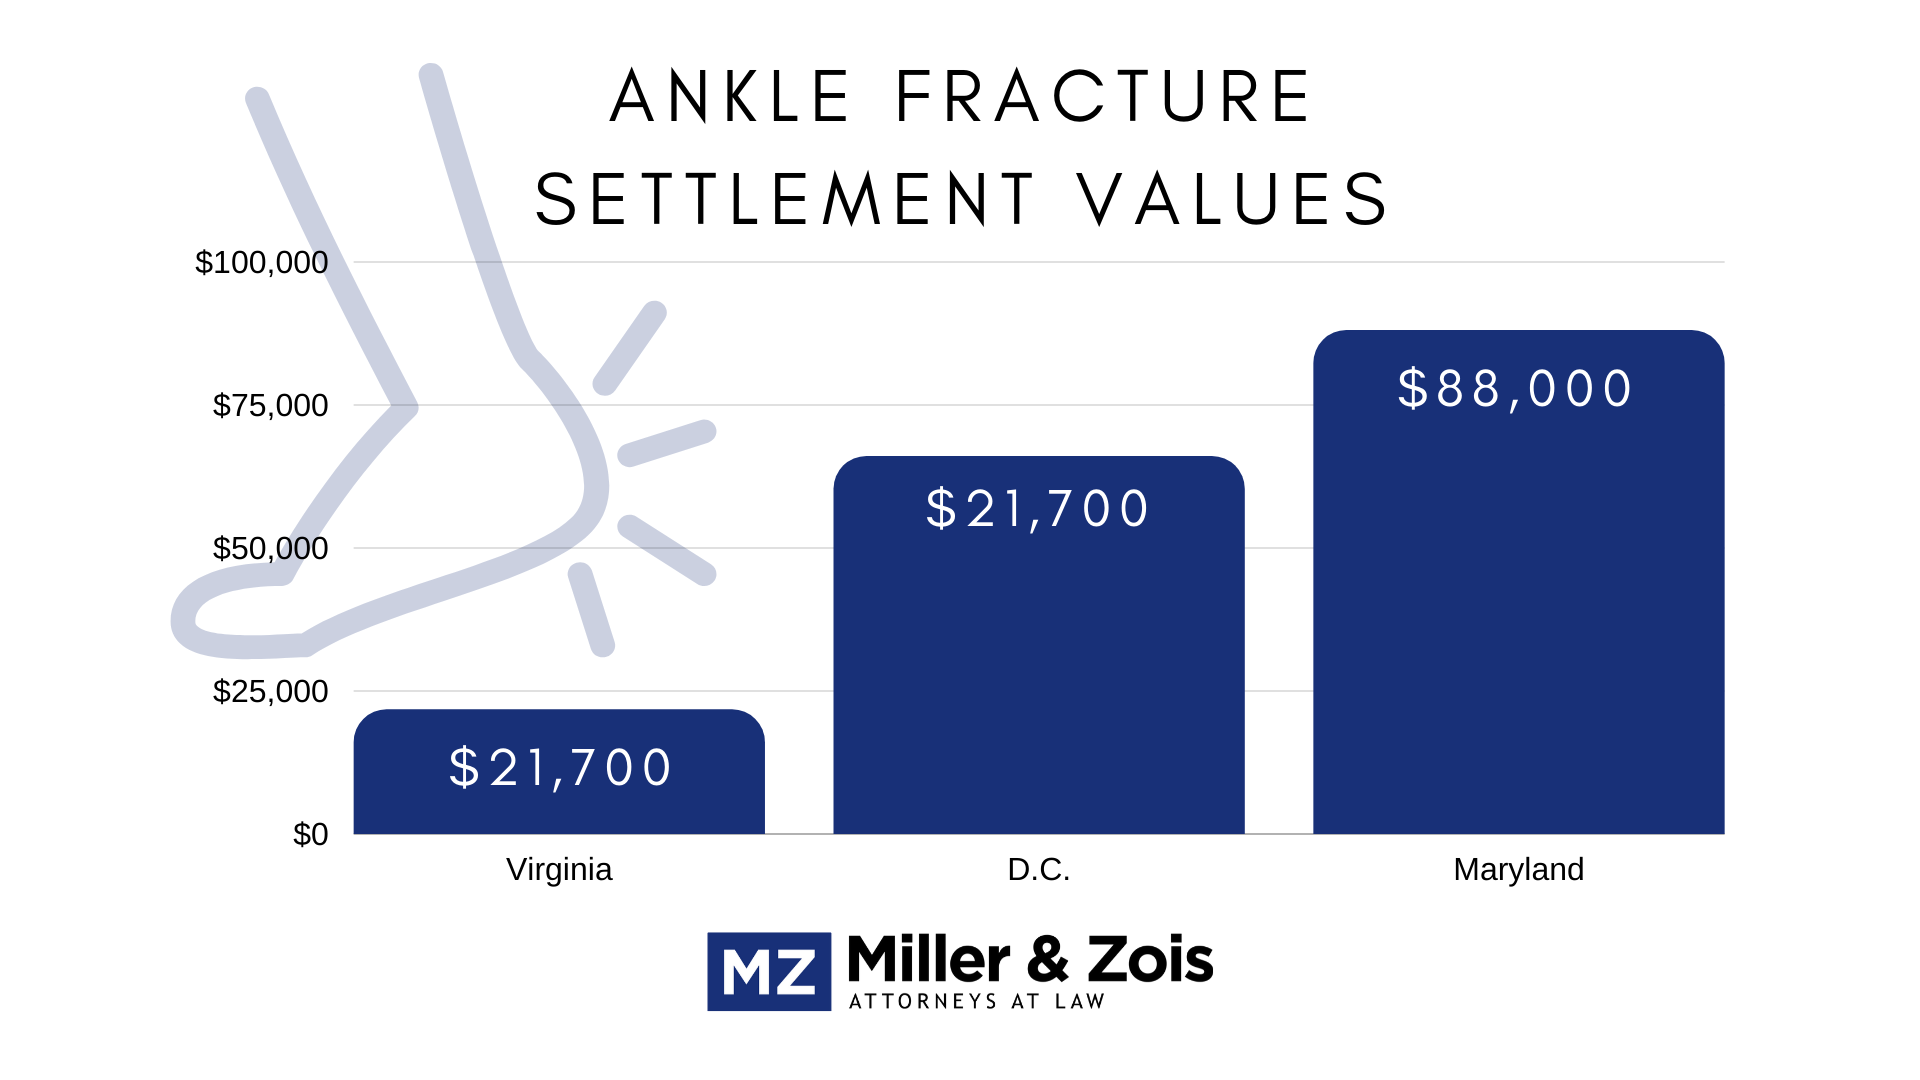 ankle fracture settlement